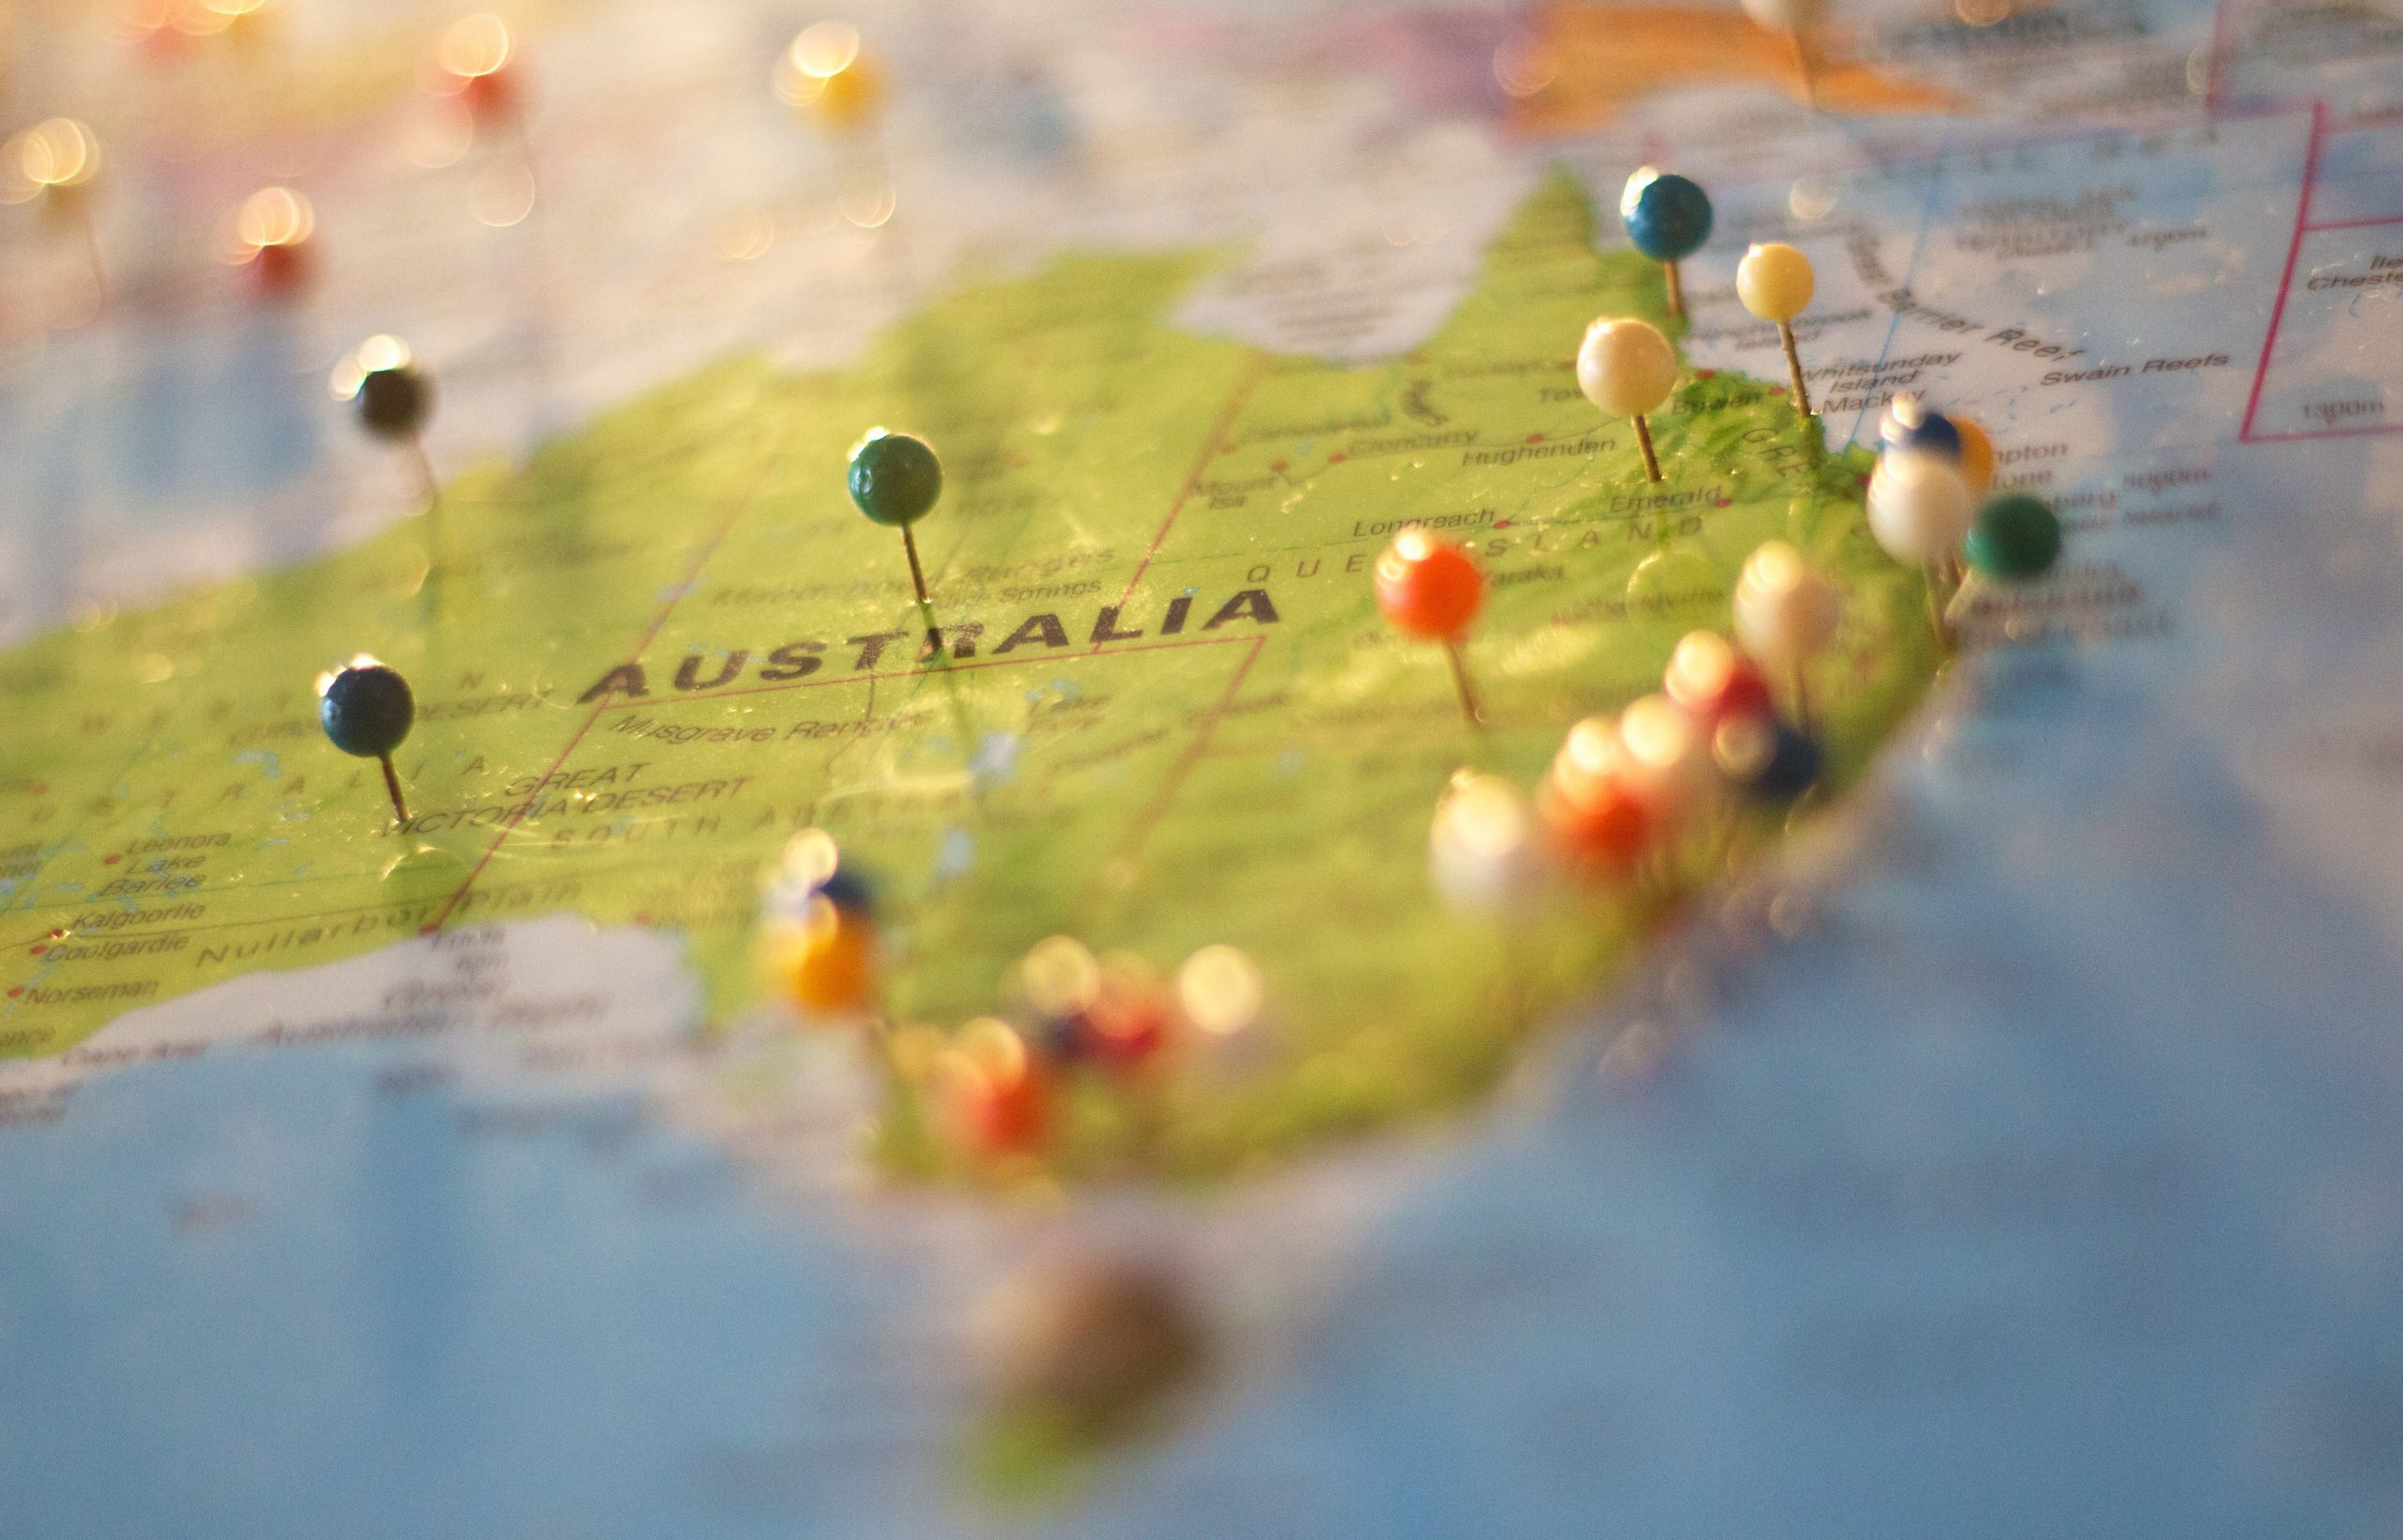 New South Wales, Australia – State nominations now open for PR